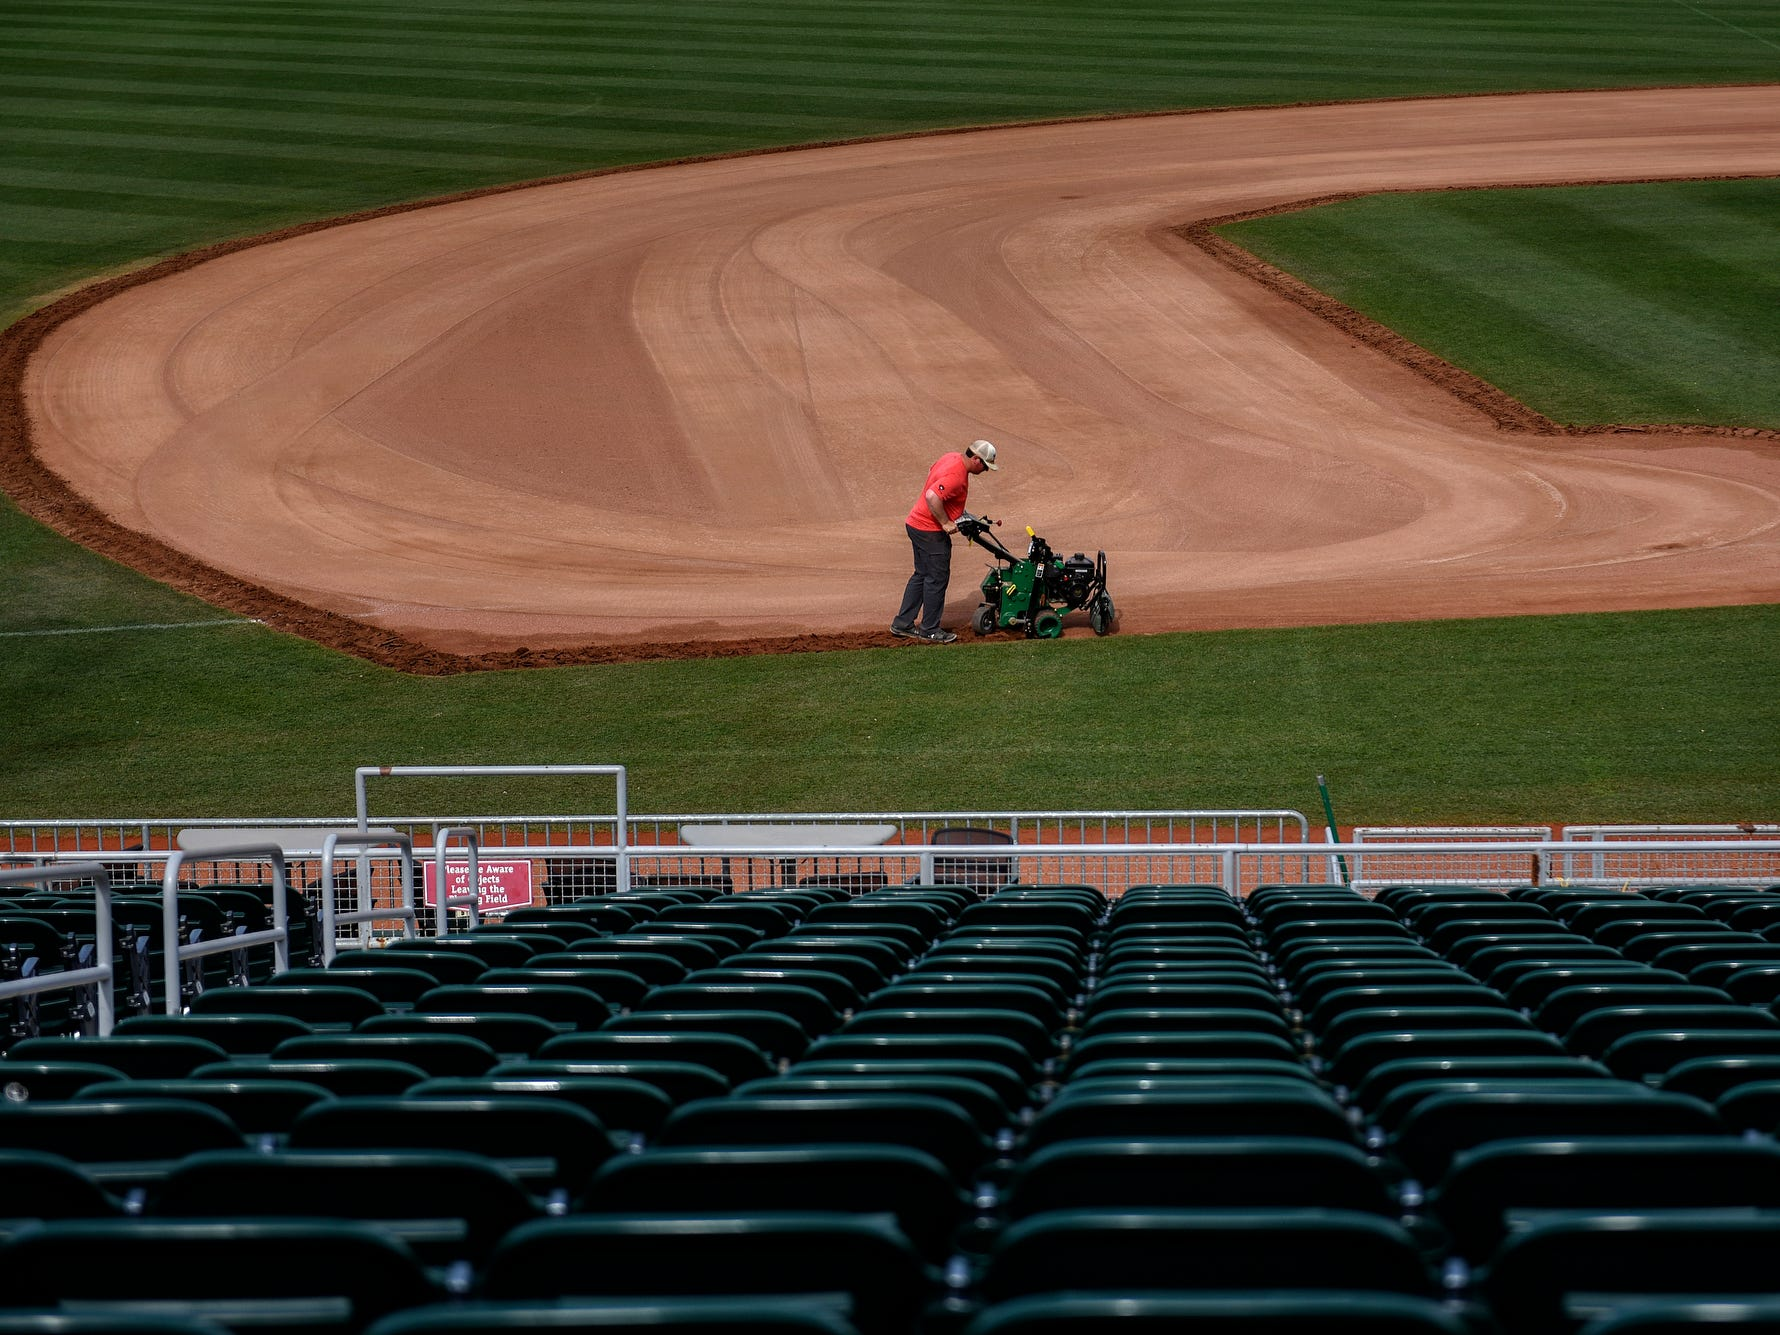 Lugnuts Head Groundskeeper Zach Severns rototills the edge of the infield dirt as he works to turnover the baseball field for a Lansing Ignite soccer match on Wednesday, April 24, 2019, at Cooley Law School Stadium in Lansing.